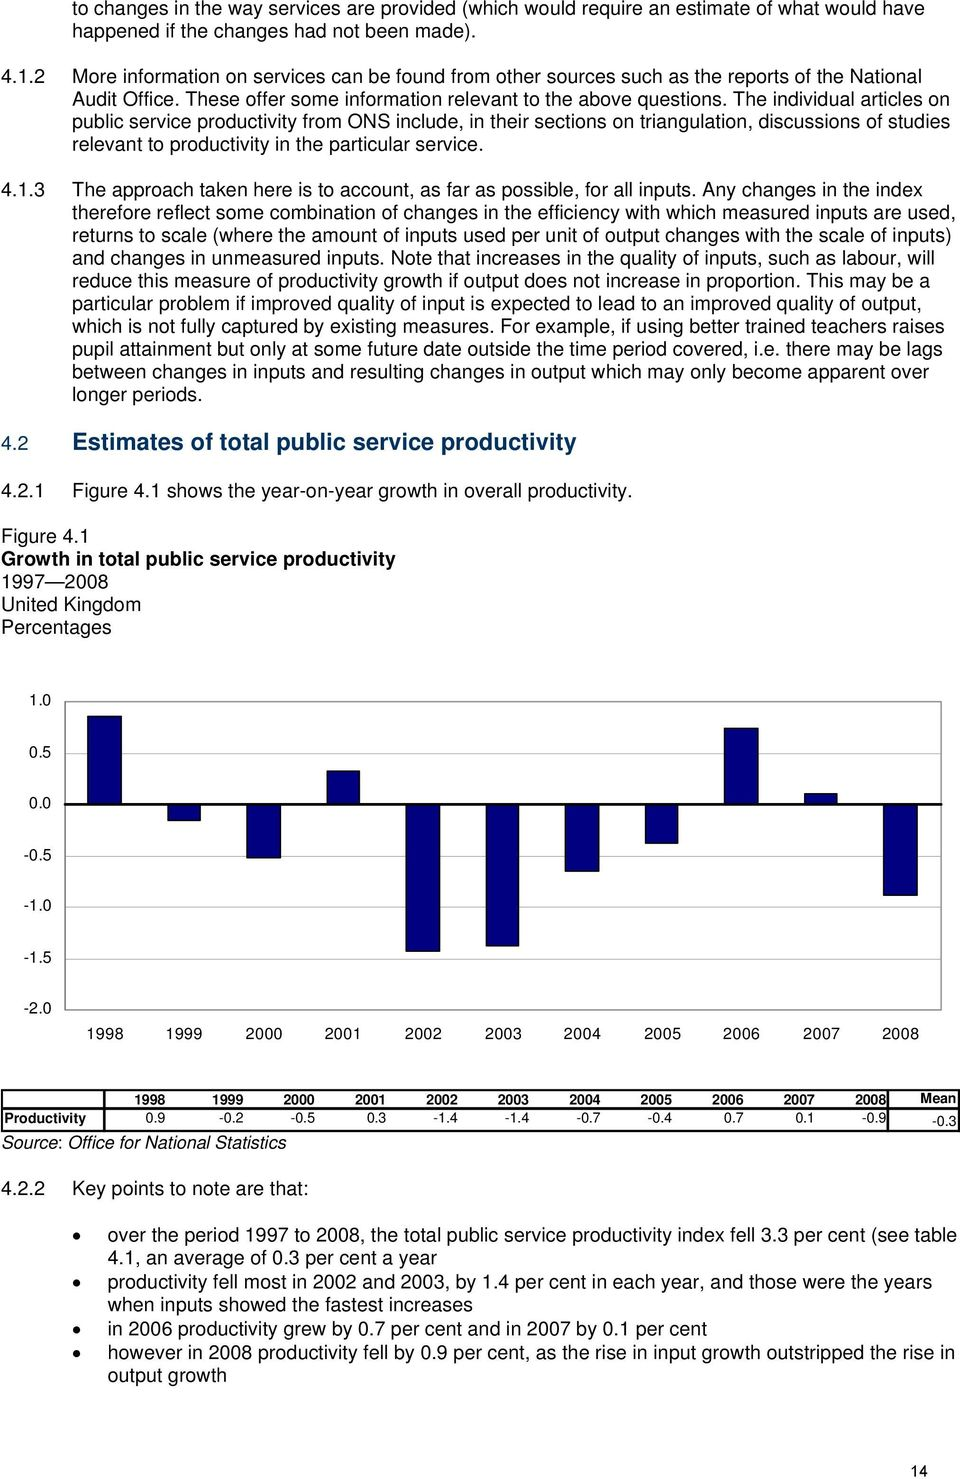 The individual articles on public service productivity from ONS include, in their sections on triangulation, discussions of studies relevant to productivity in the particular service. 4.1.